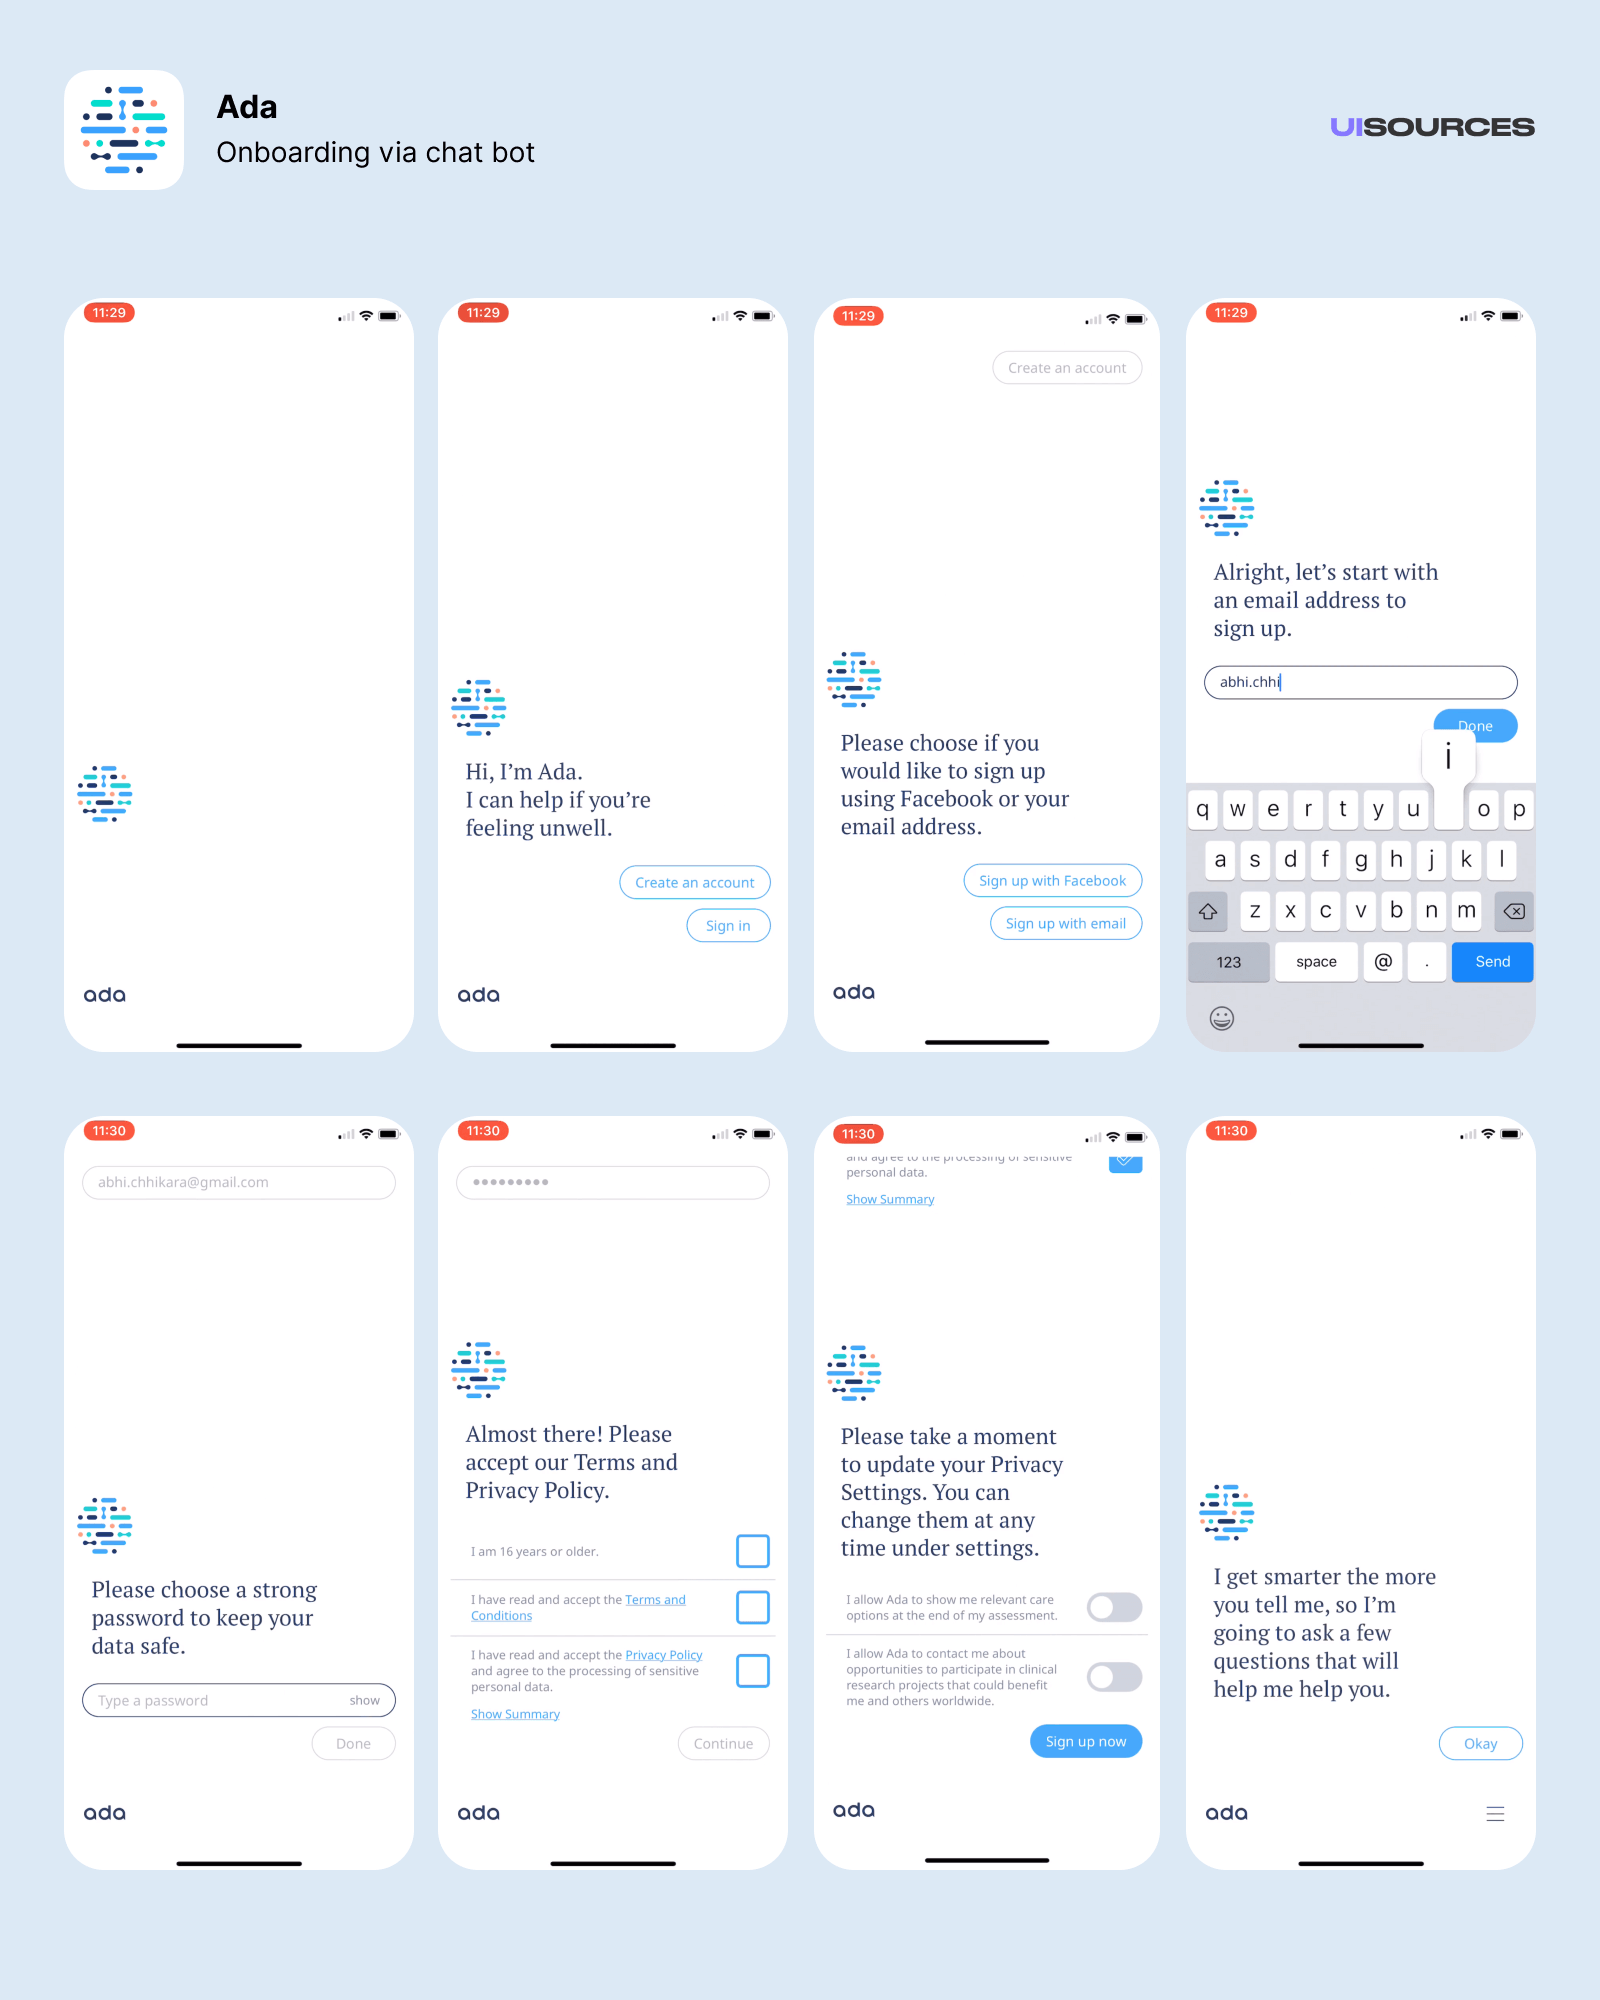 Onboarding via chat bot